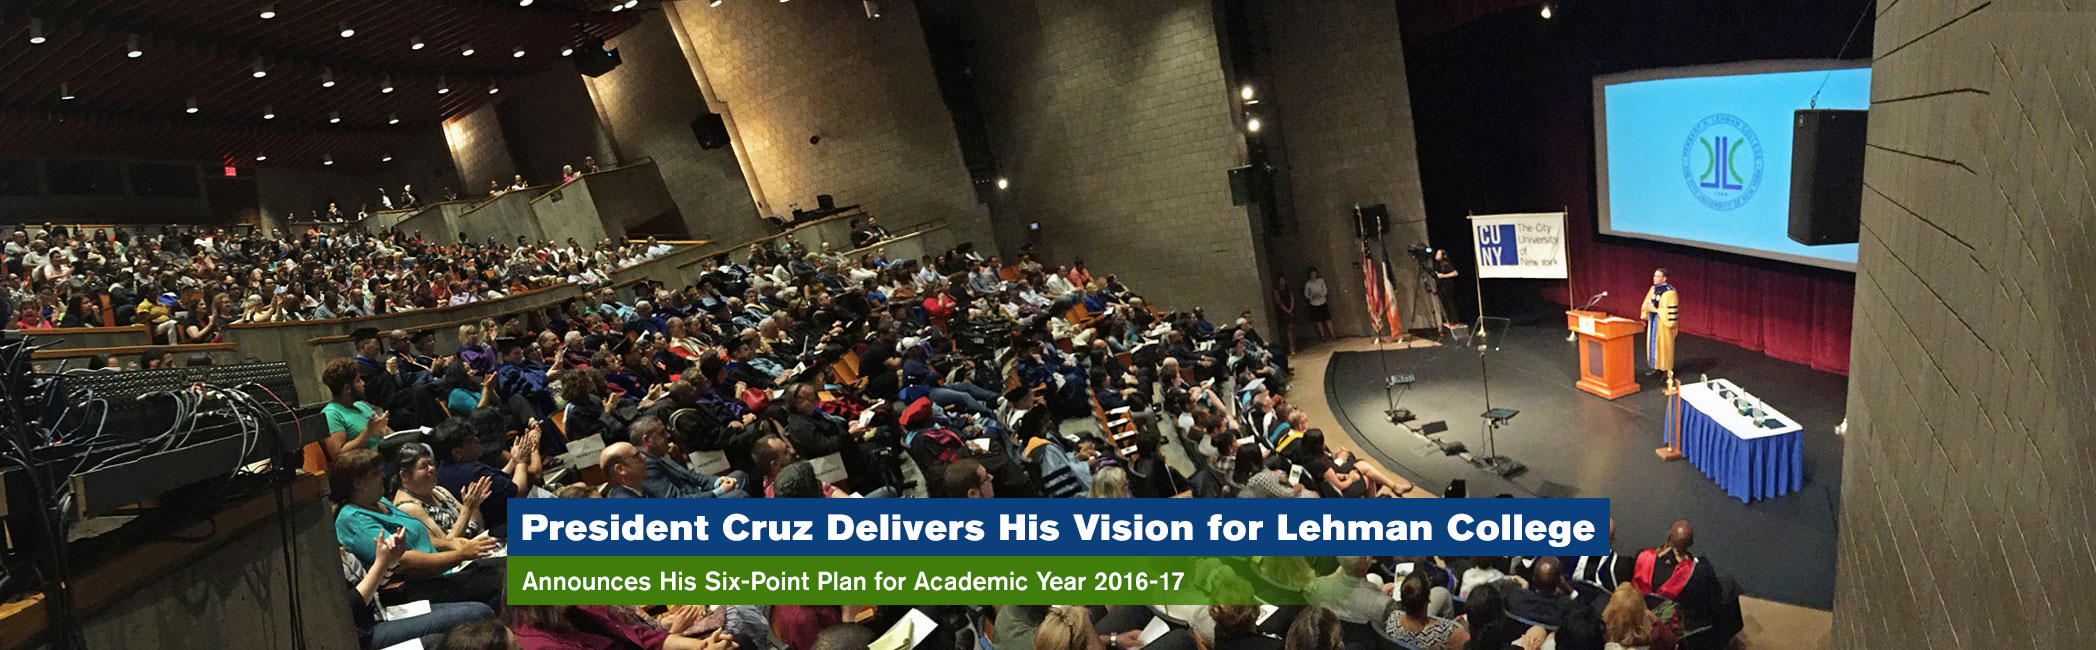 President Cruz Delivers His Vision for Lehman College